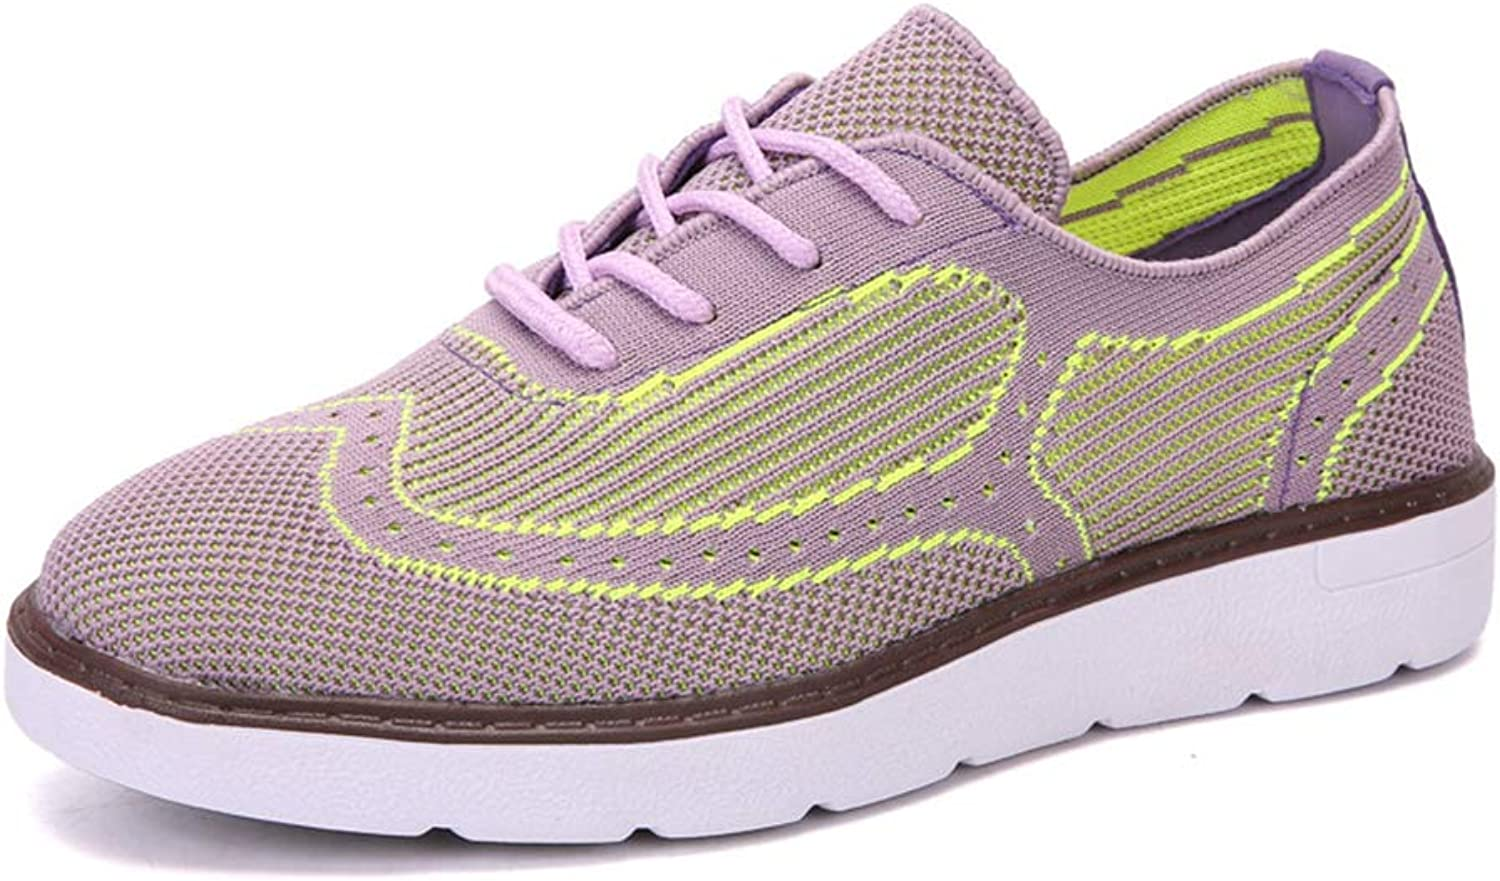 Women's Sneakers, Leisure Fashion Breathable Flying Weaving Trainer Fitness Running shoes,Purple,39